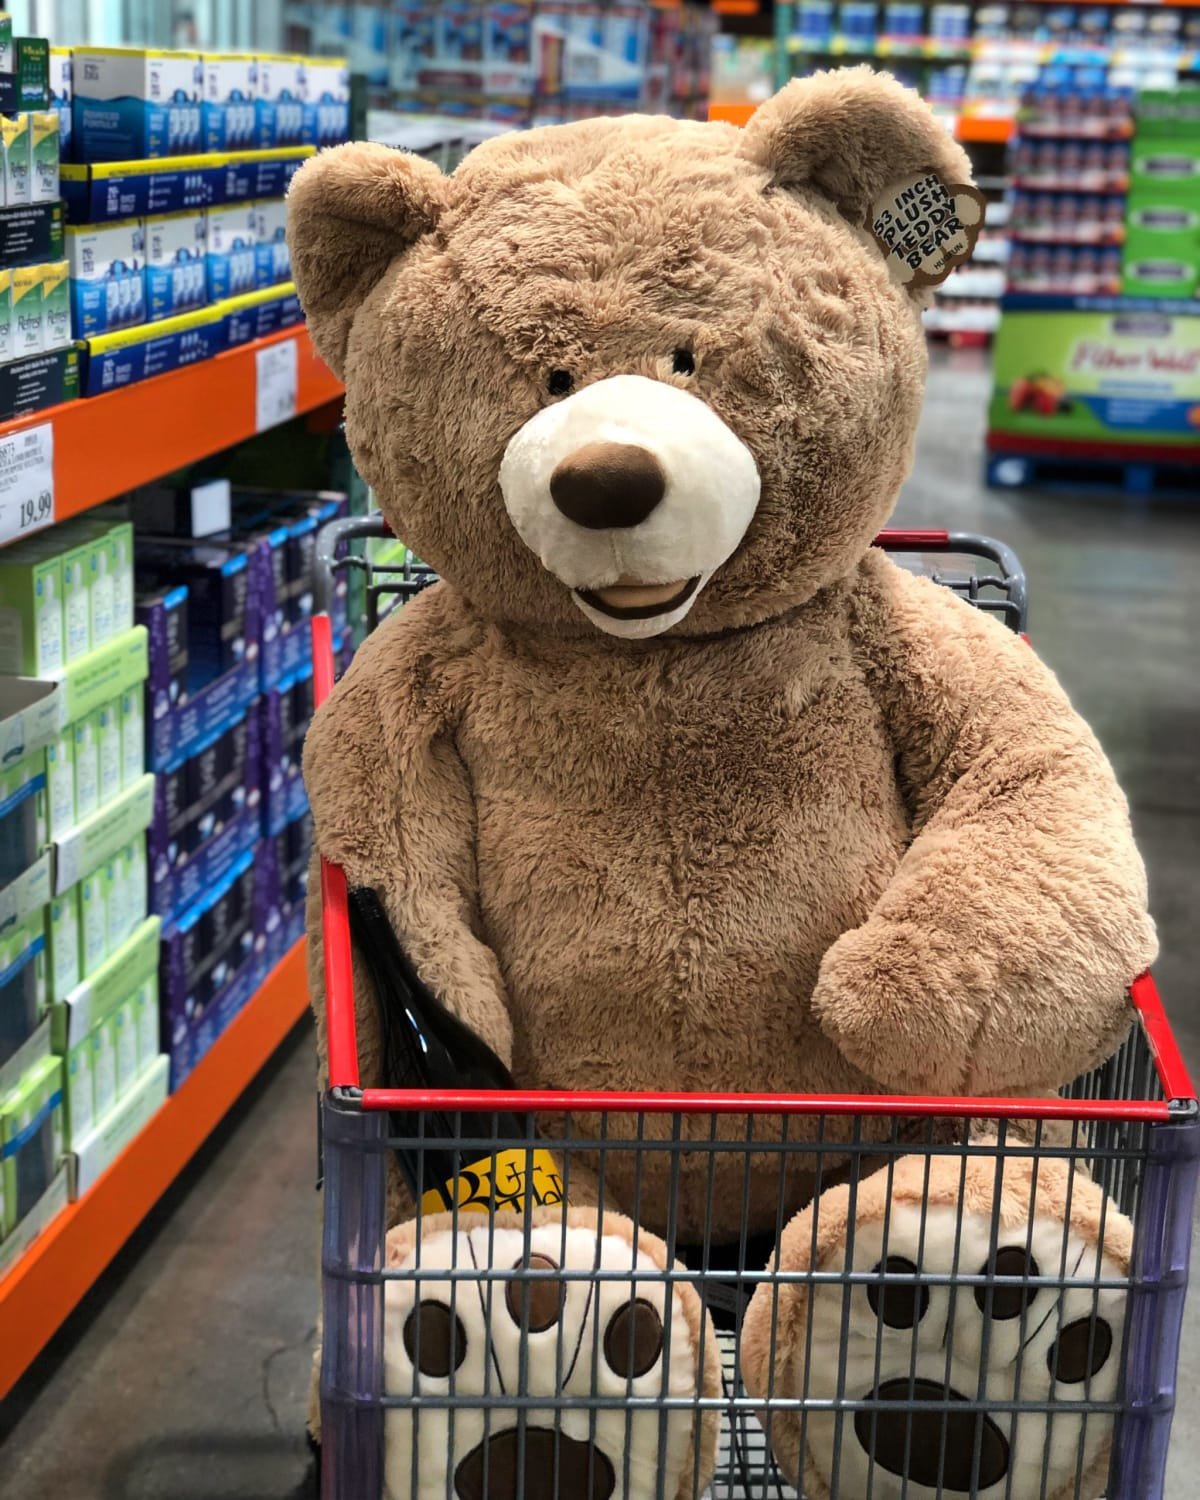 Ted was ready for a ride in something a bit more comfortable…